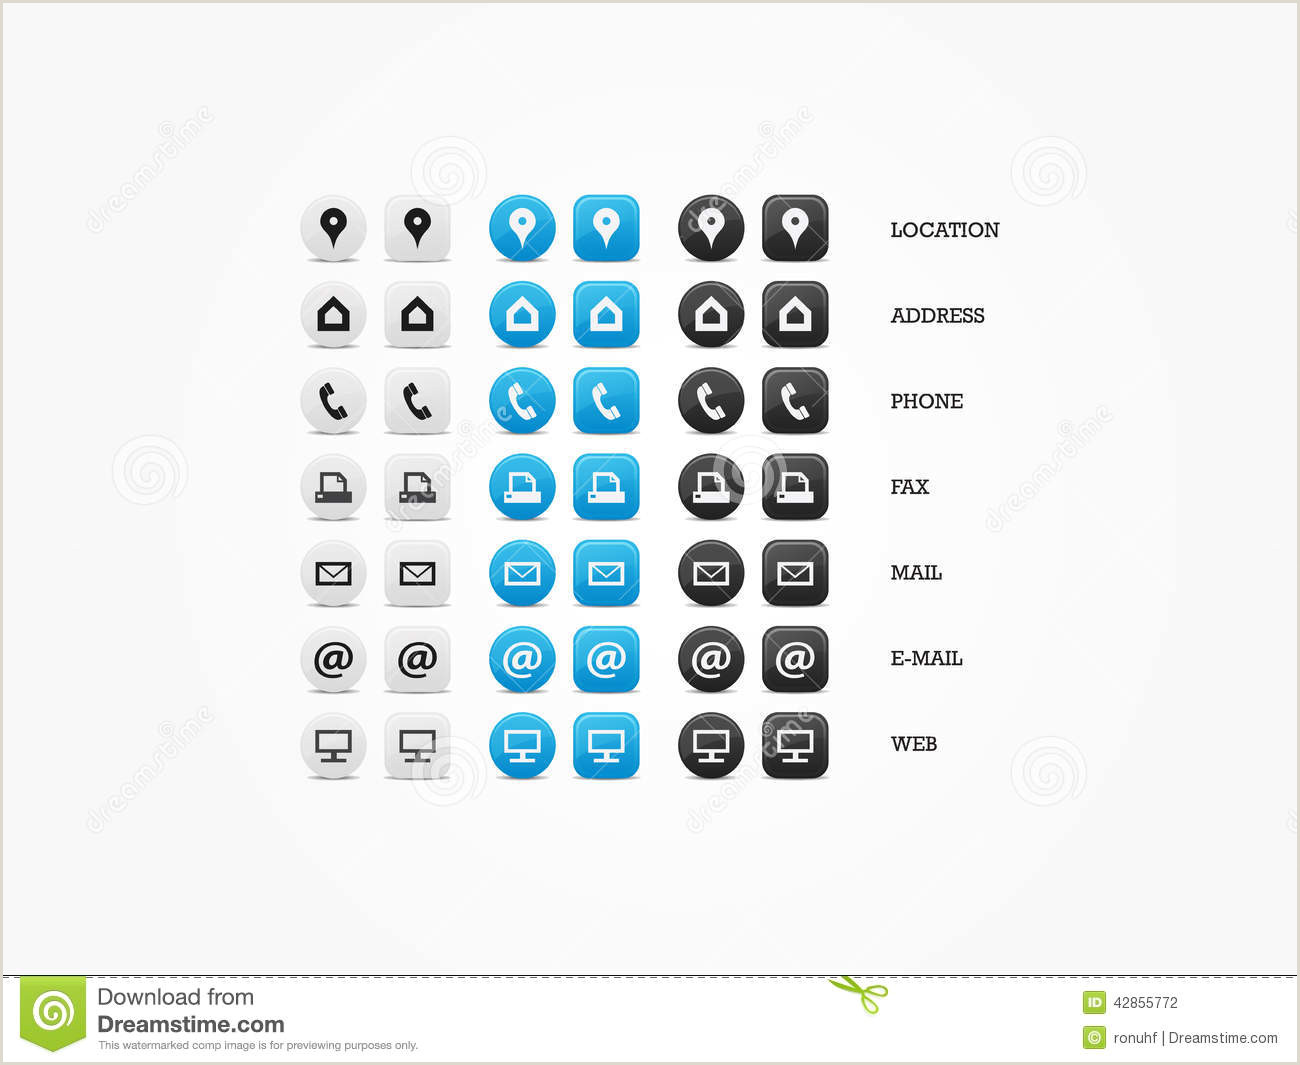 Contact Icons For Business Cards 15 Contact Icons For Business Cards Free Contact